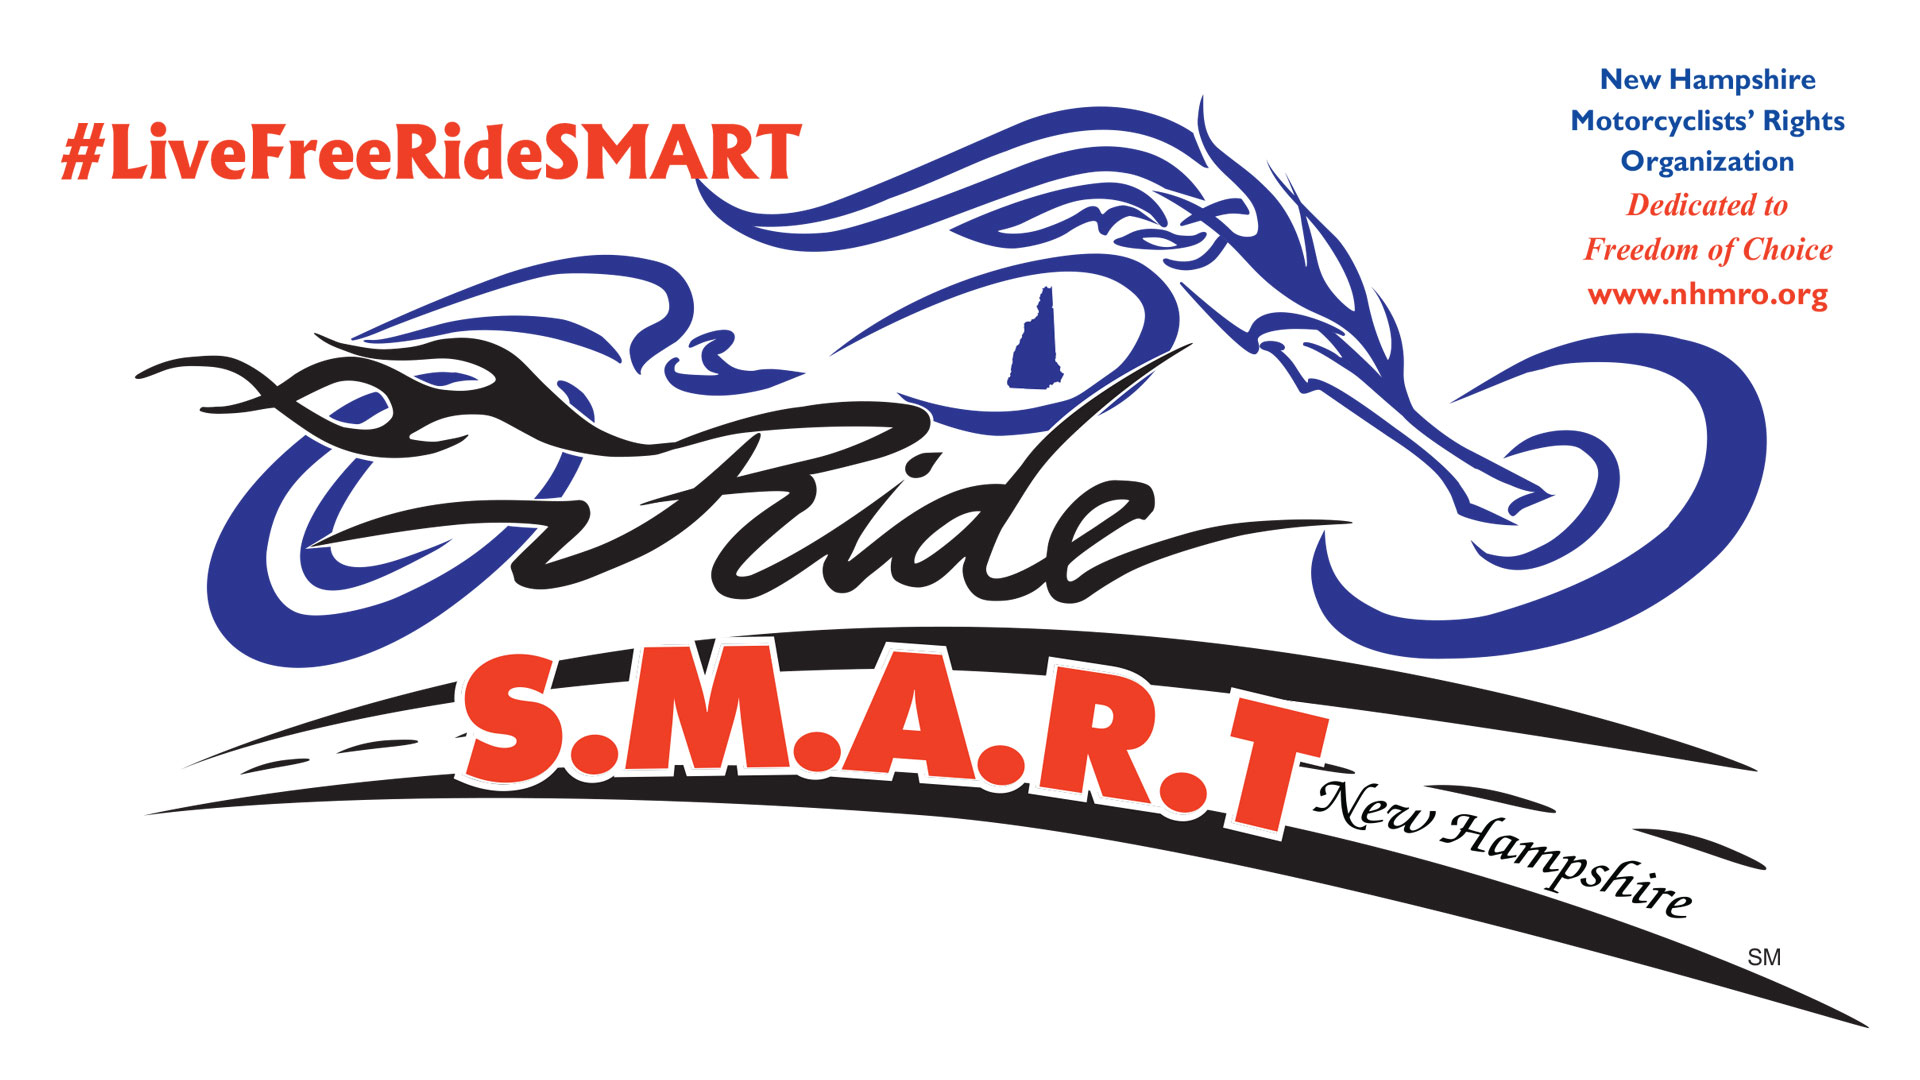 Stay Alert and Share the Road with Motorcycles: A Few Reminders to Ride S.M.A.R.T During Motorcycle Safety Awareness Month